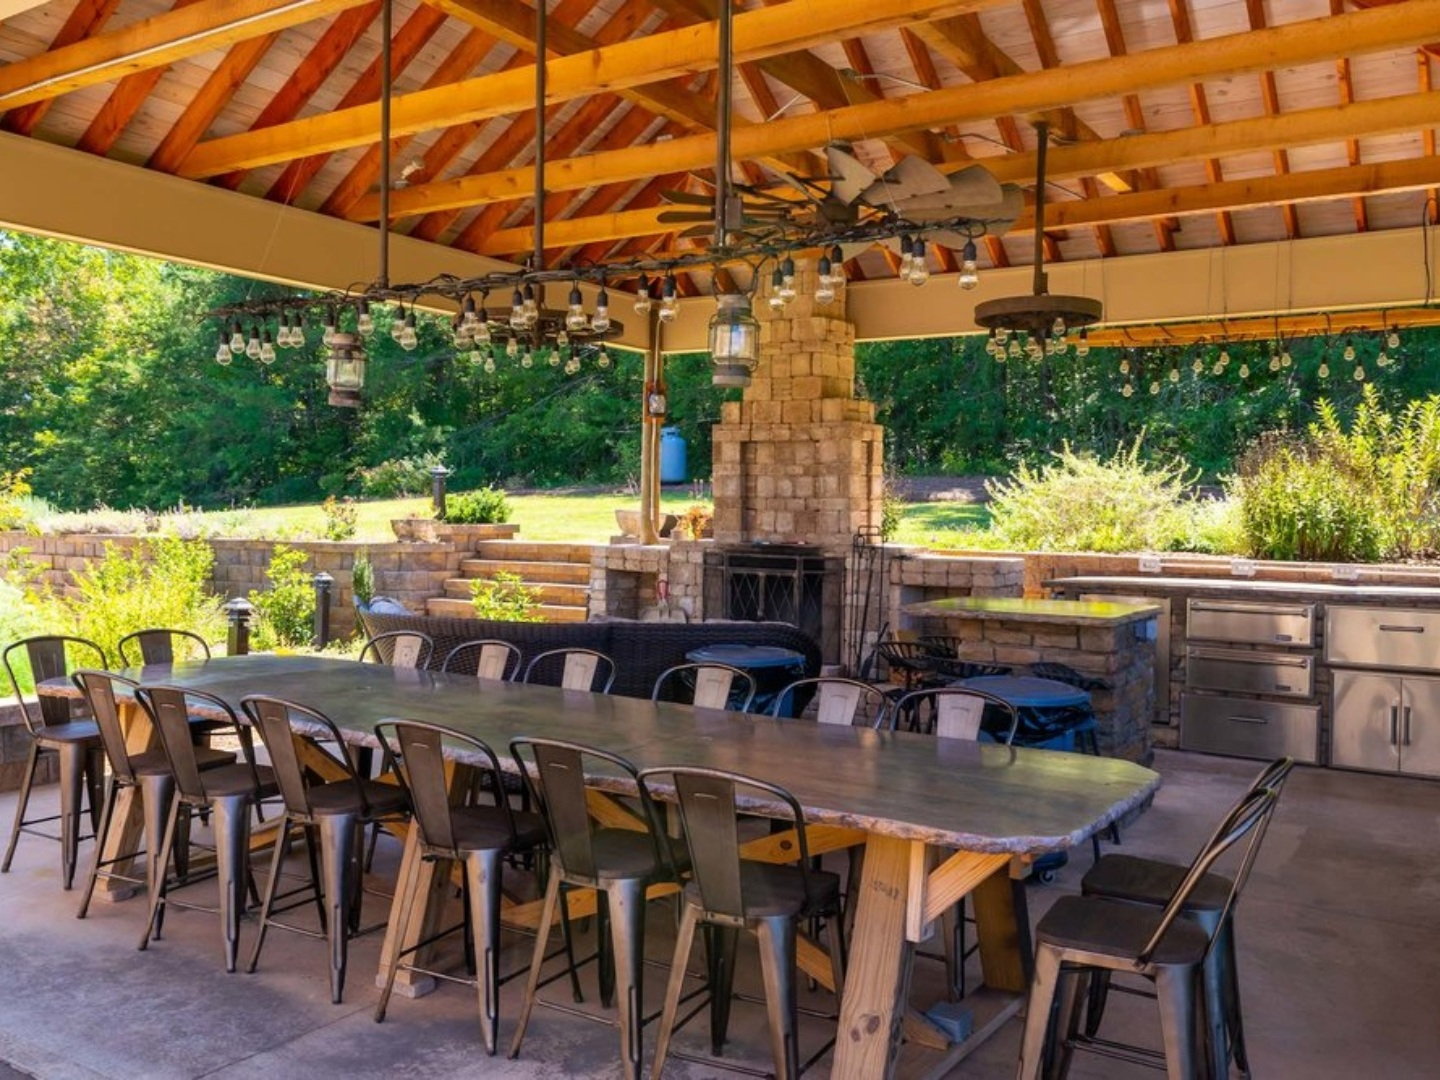 A group of people sitting at a table with an umbrella at Glassy View Bed and Breakfast.